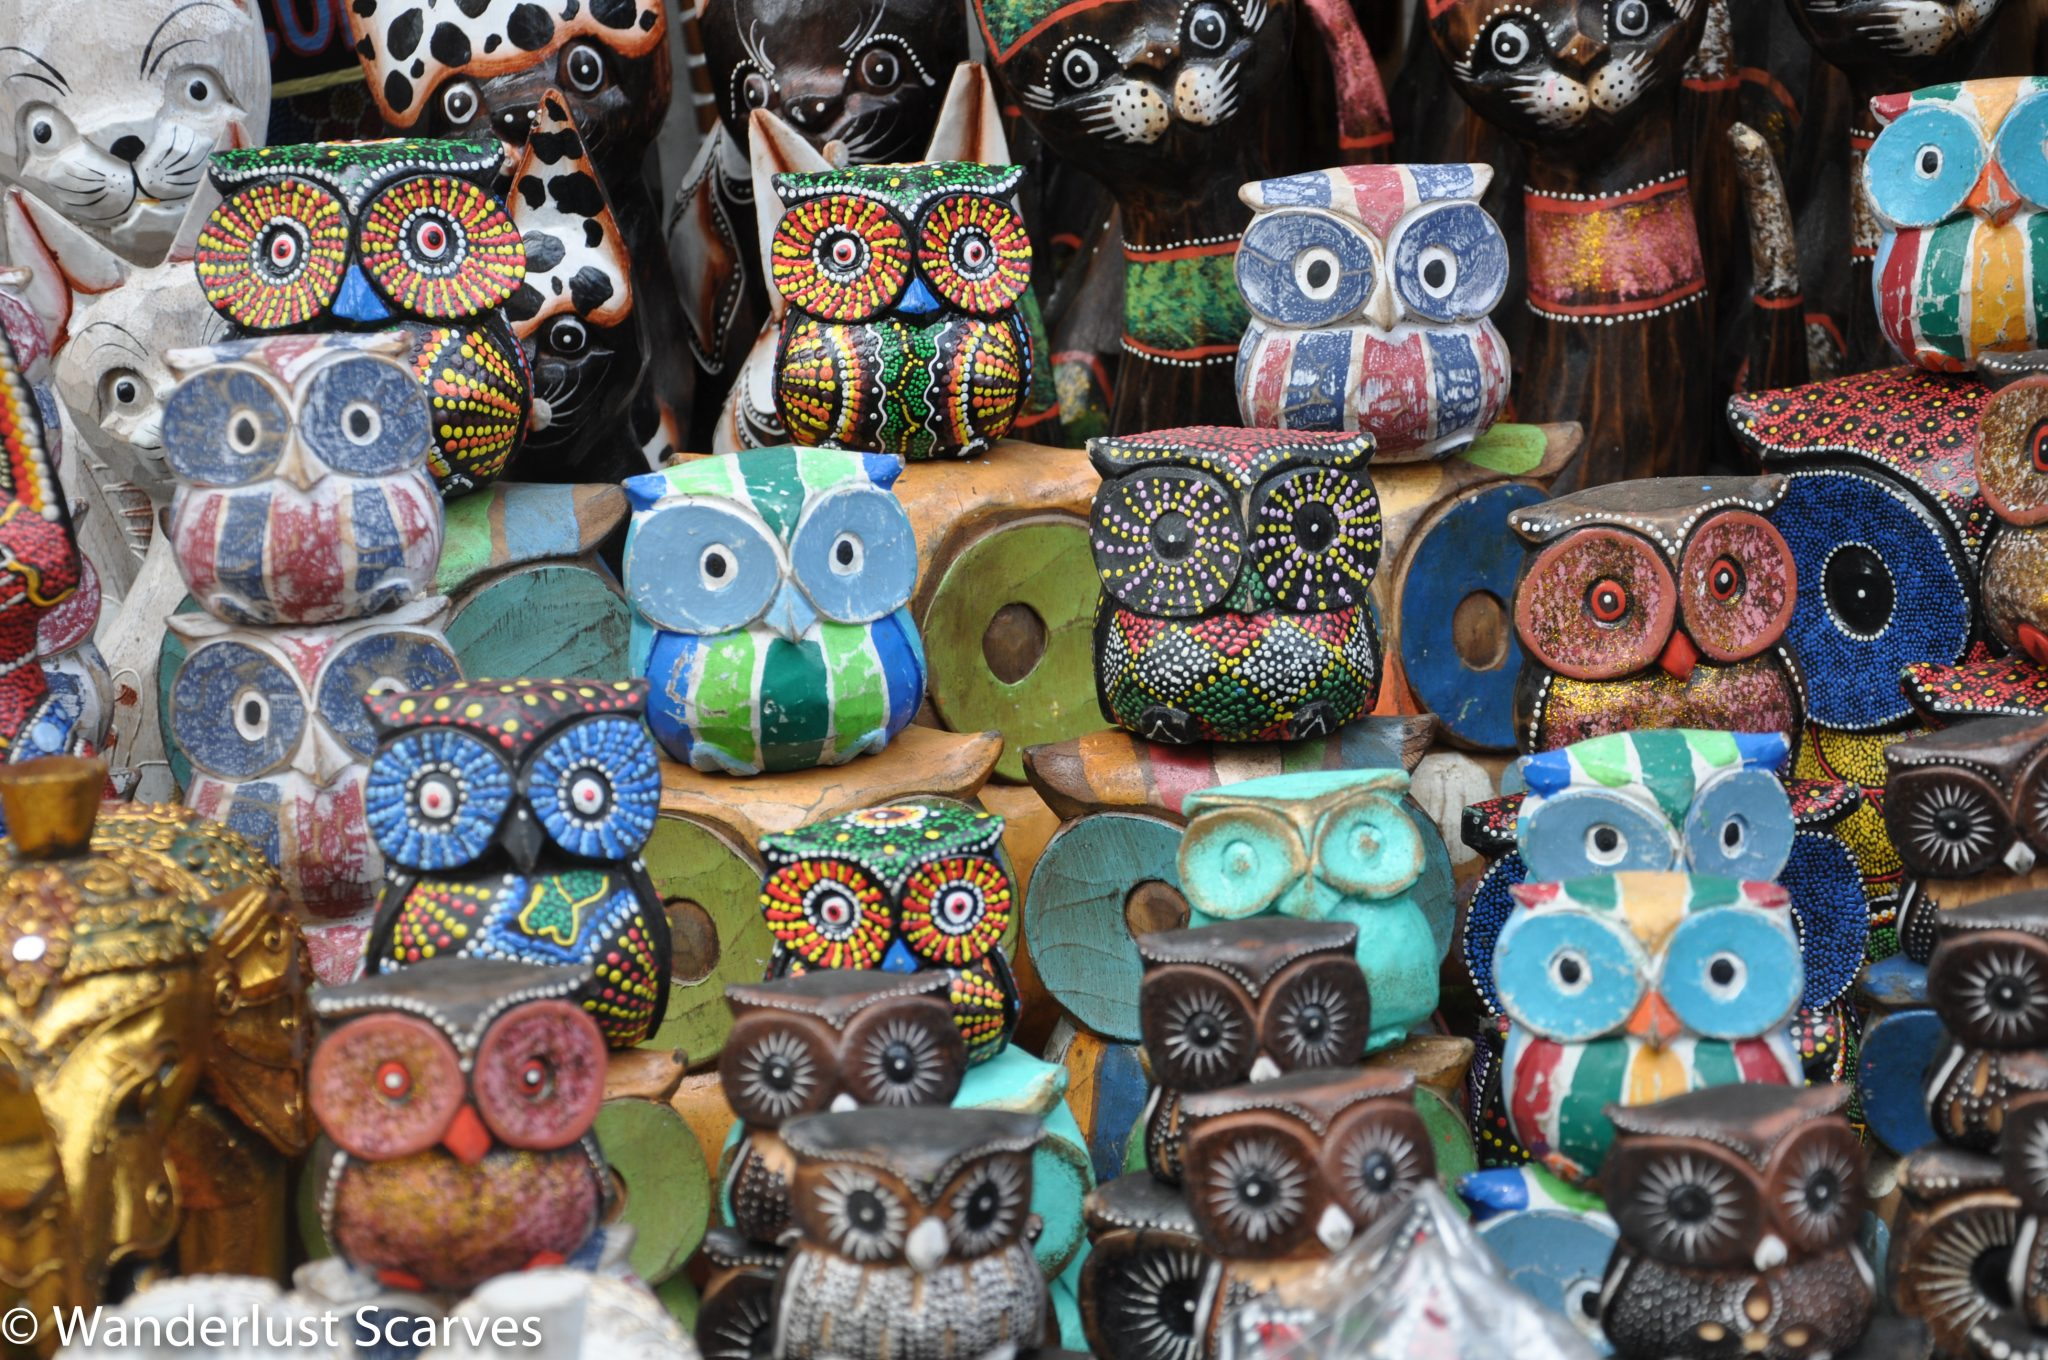 Carved Owls at the Market